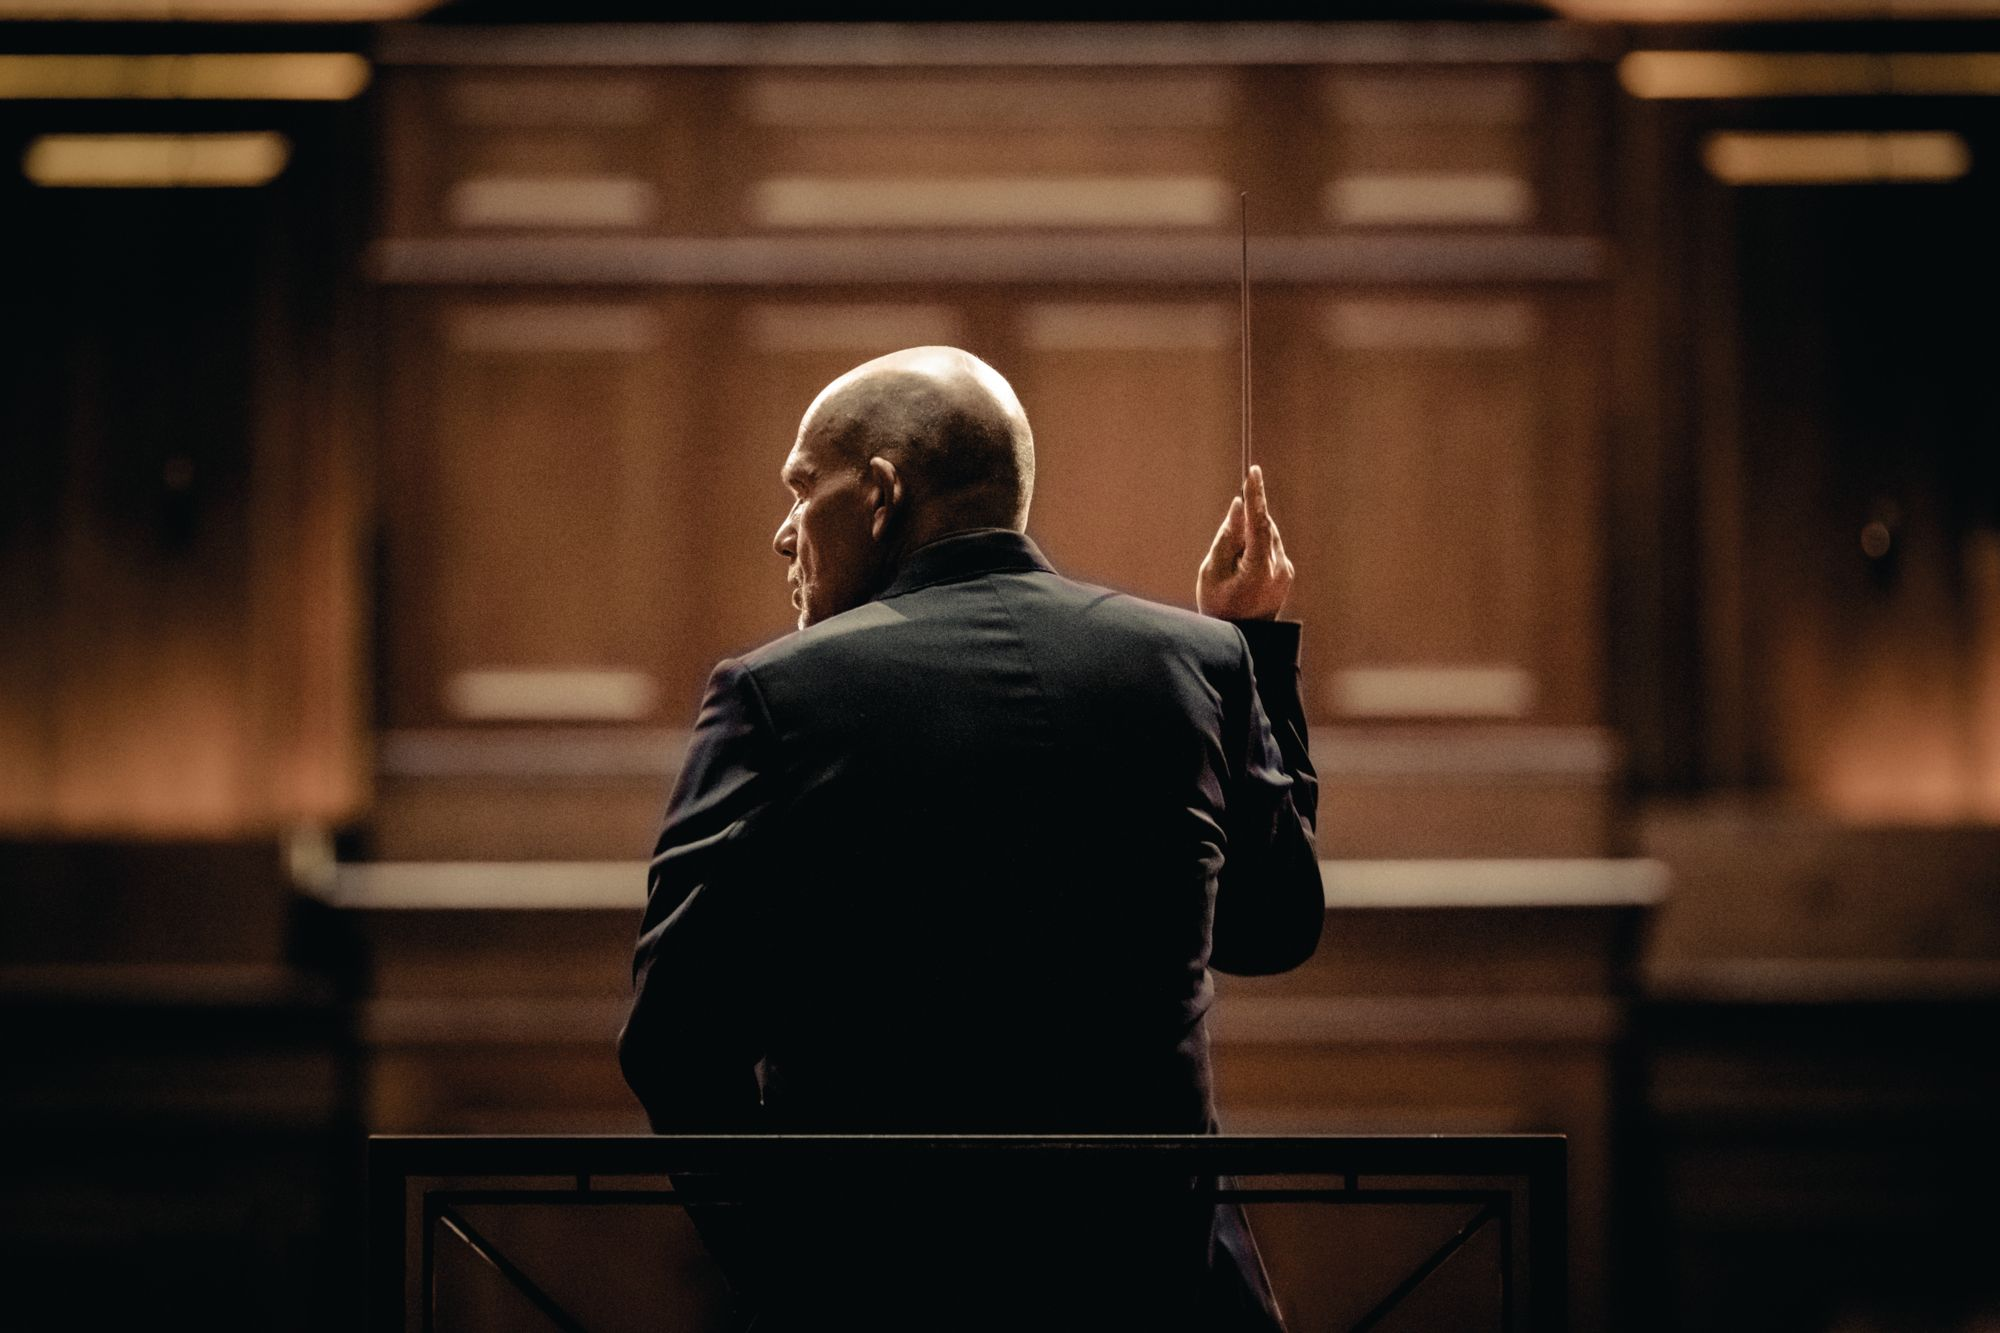 Van Zweden conducting